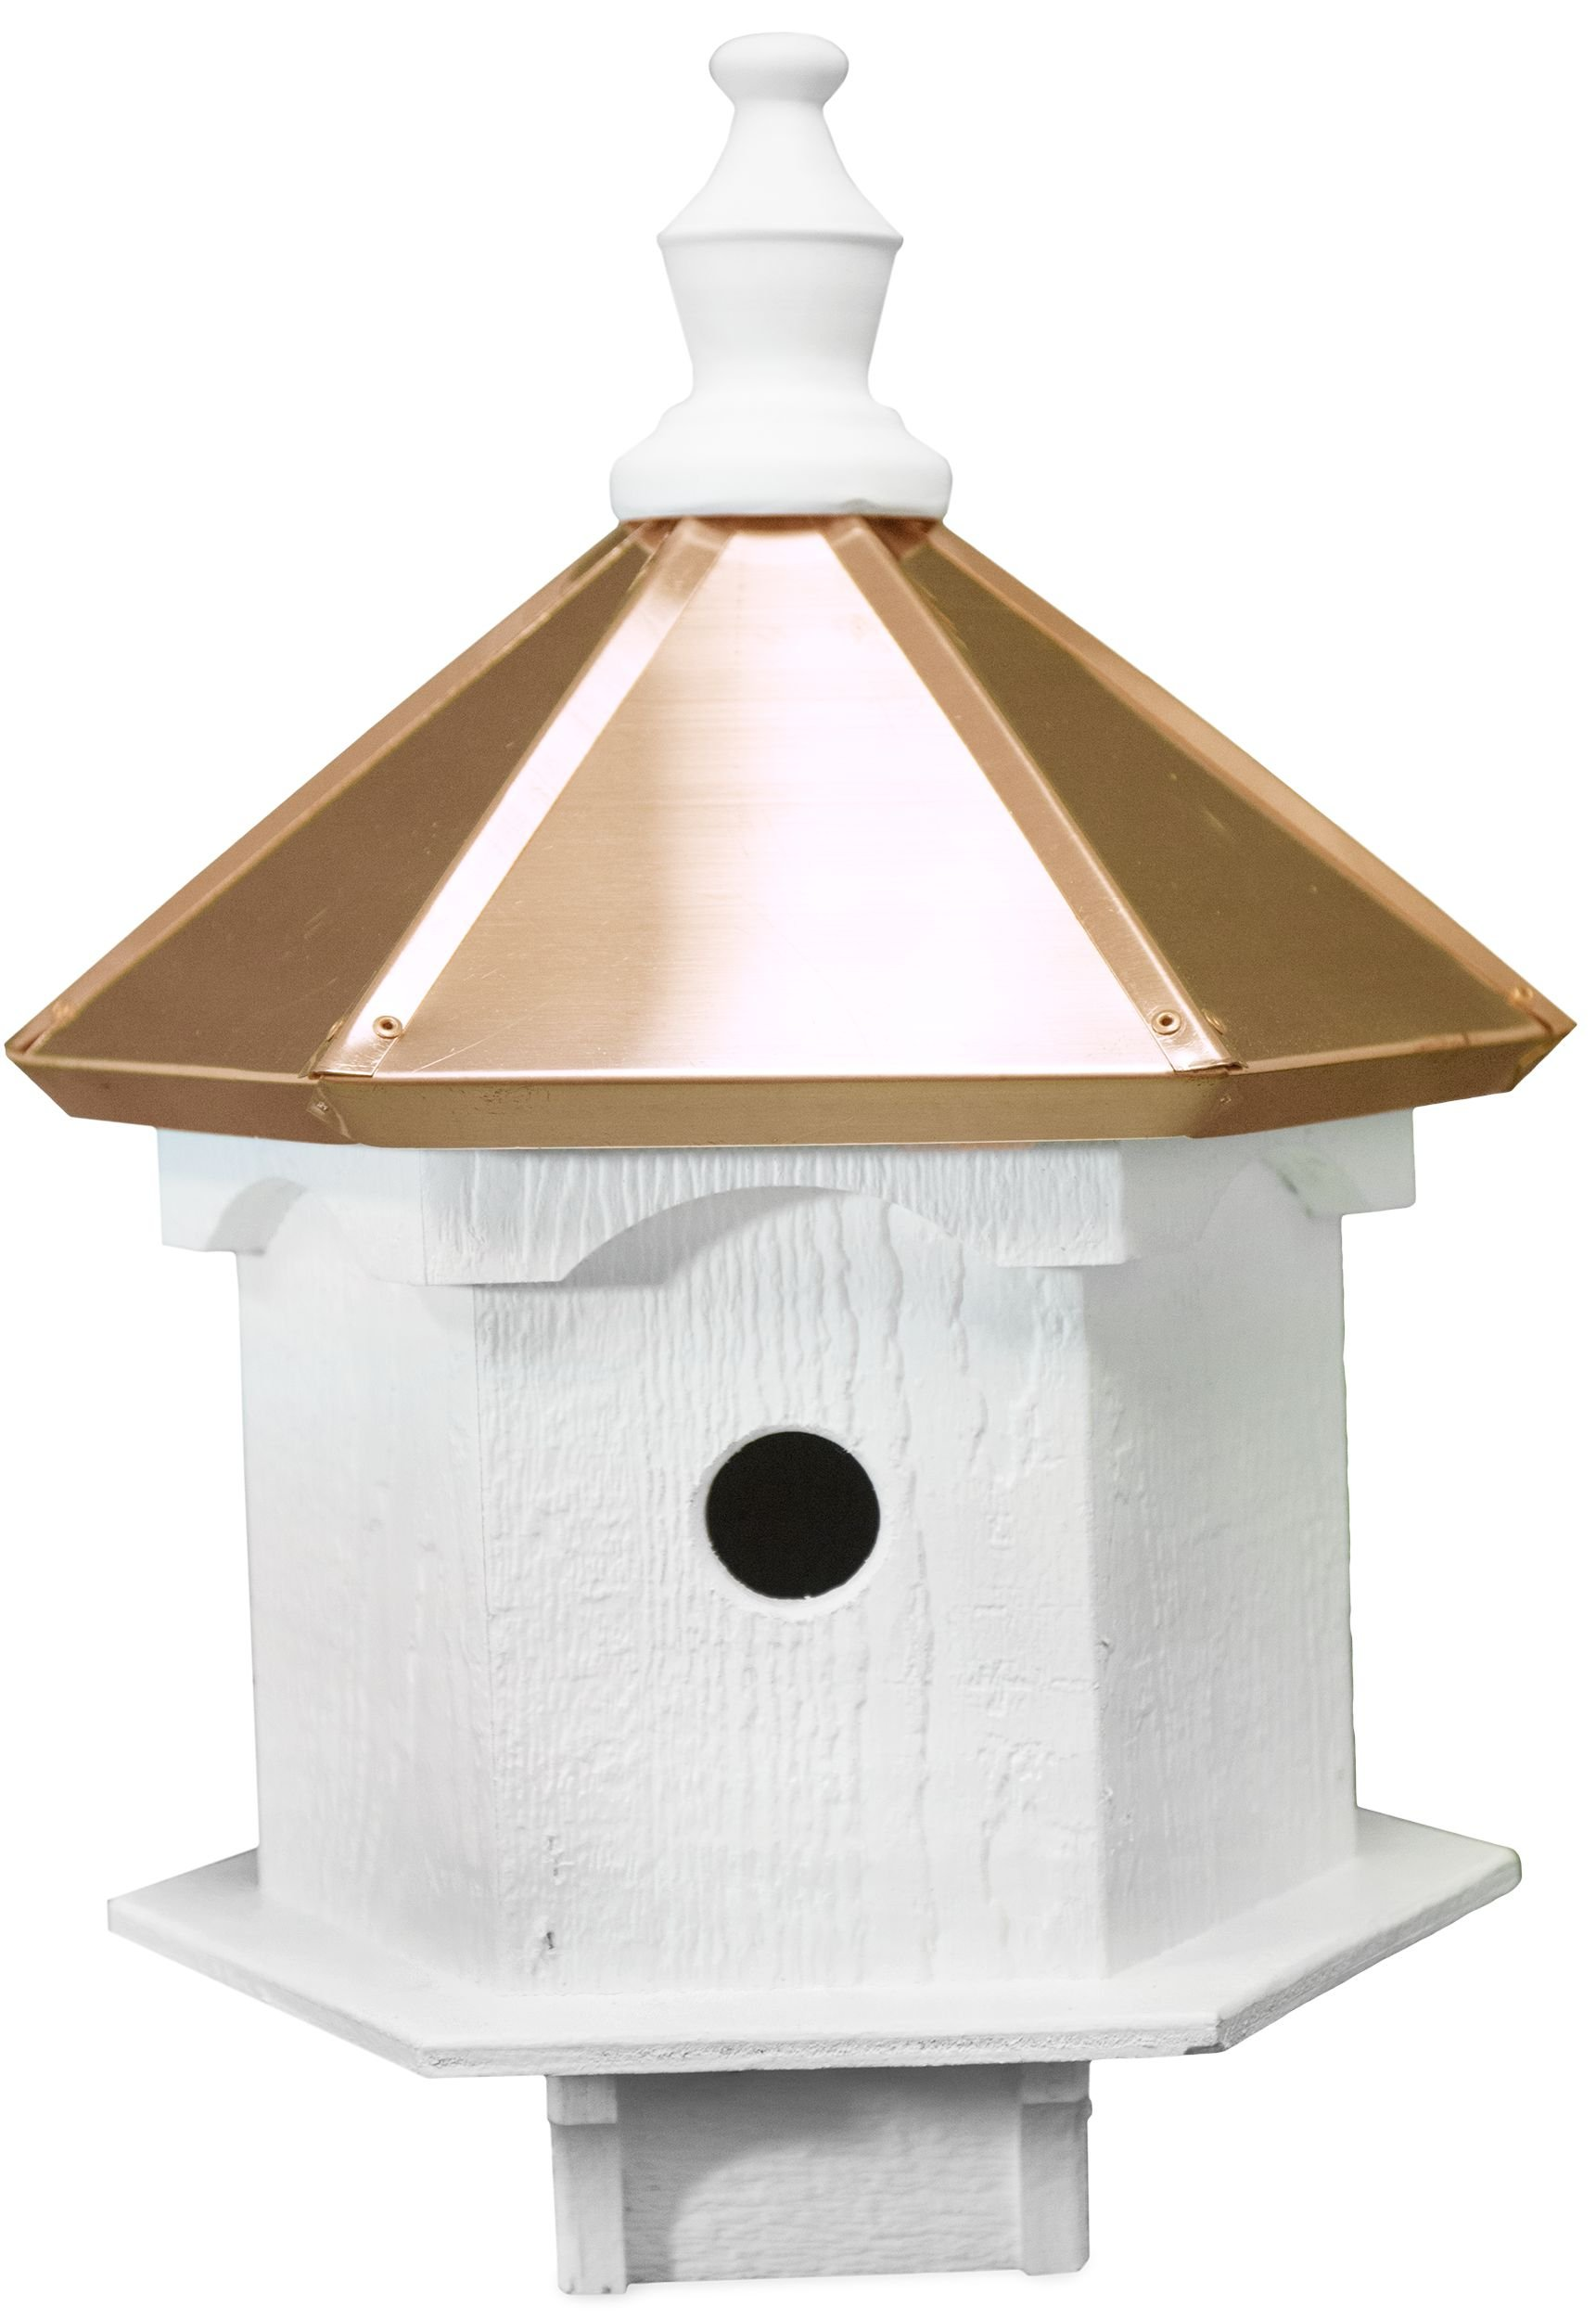 Amish Double Bluebird Birdhouse with Copper Roof, Handcrafted in the USA by Willow Run Collection